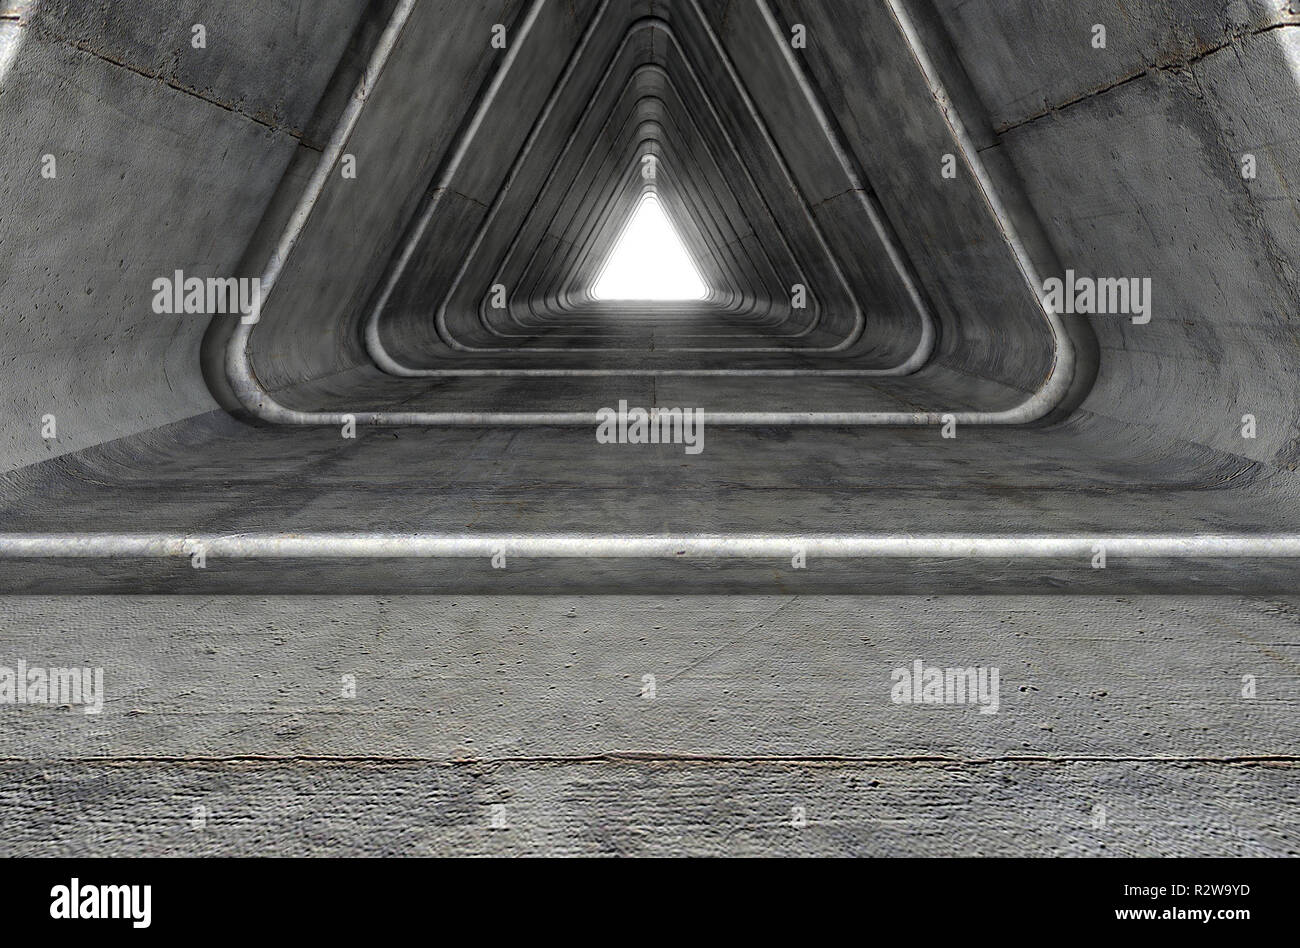 A look down a concrete tunnel made out of triangular geometric shapes with a light in the distance at the far end - 3D render Stock Photo